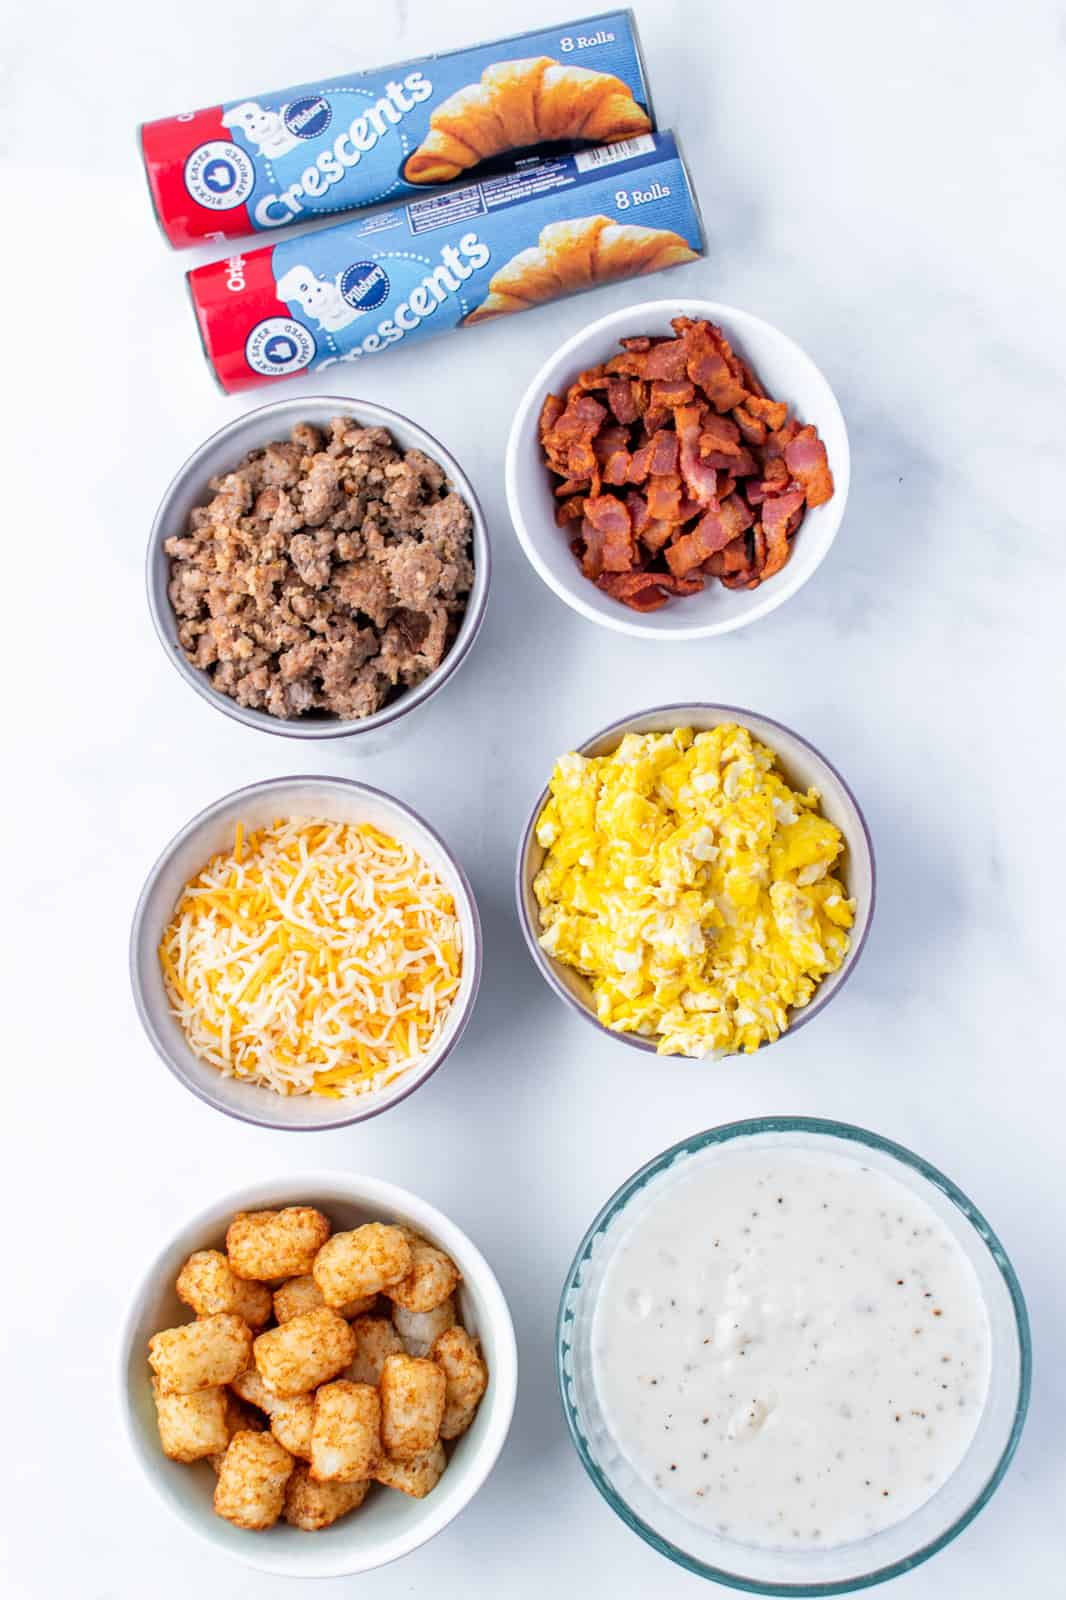 Ingredients needed: crescent rolls, tater tots, scrambled eggs, breakfast sausage, bacon, colby jack cheese, butter, poppy seeds and breakfast gravy.